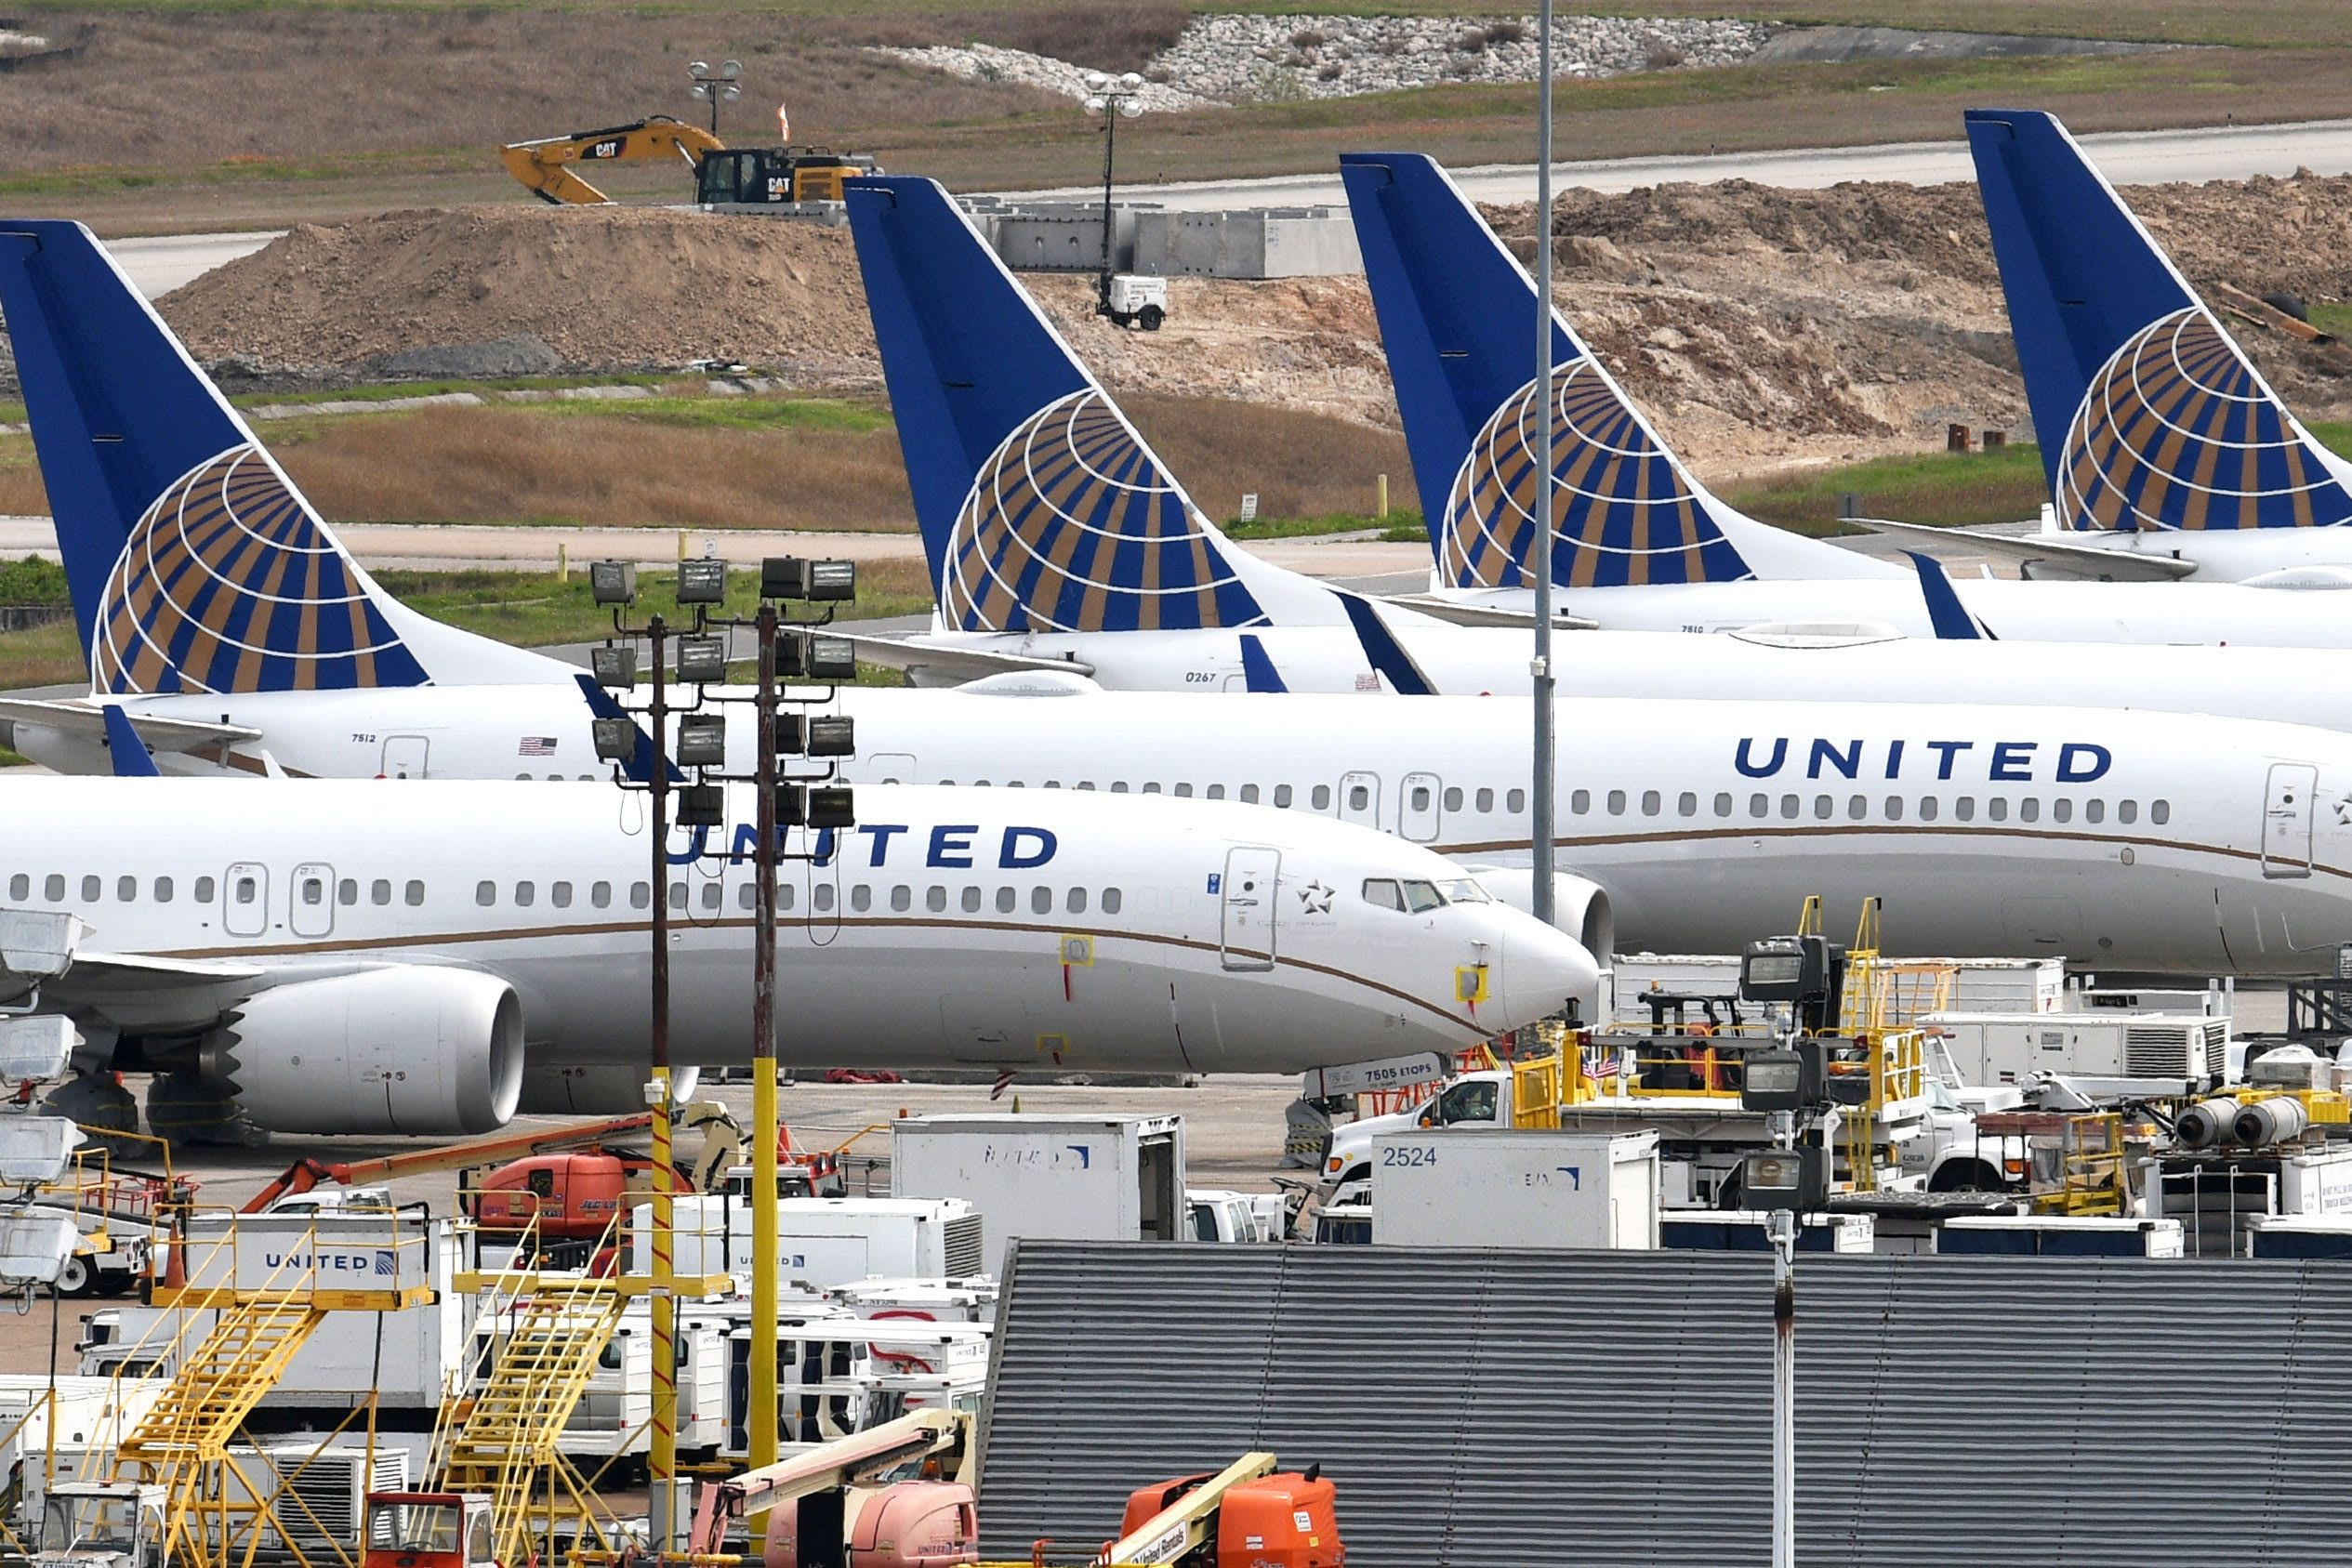 Avoid airline stocks, trader says ahead of United Airlines